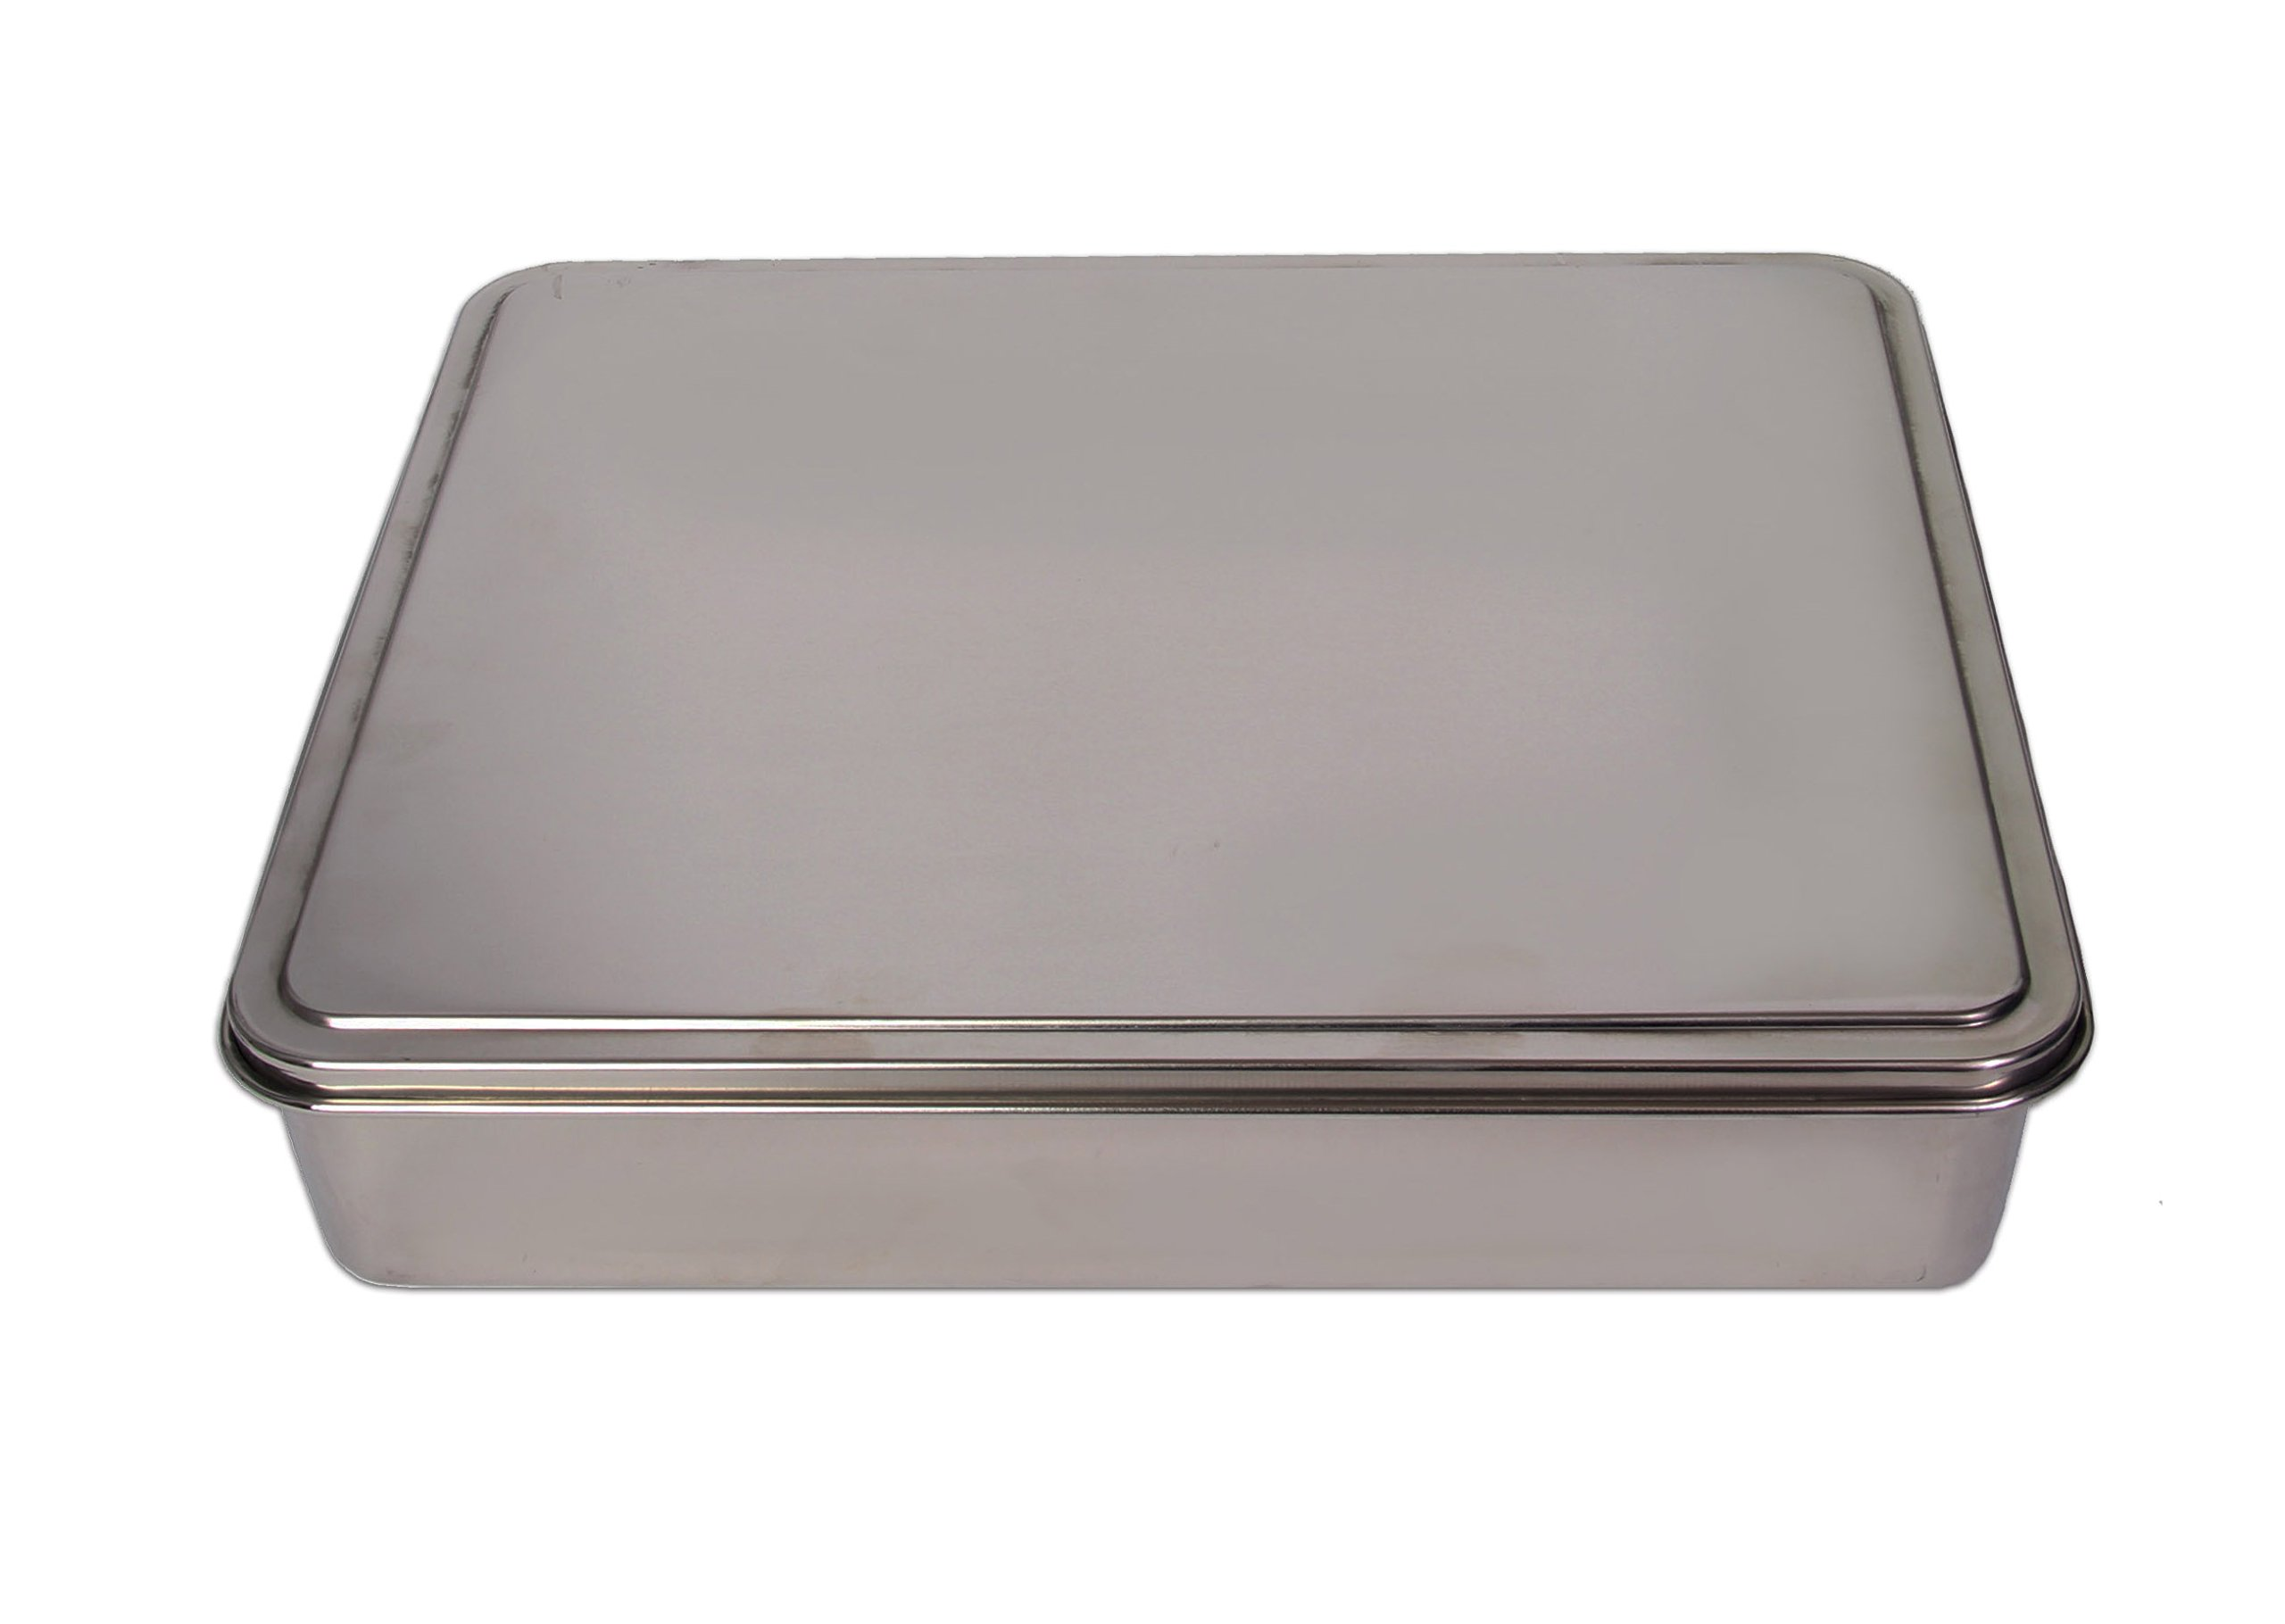 YBM HOME Stainless Steel Covered Cake Pan, Silver (Medium-2402)